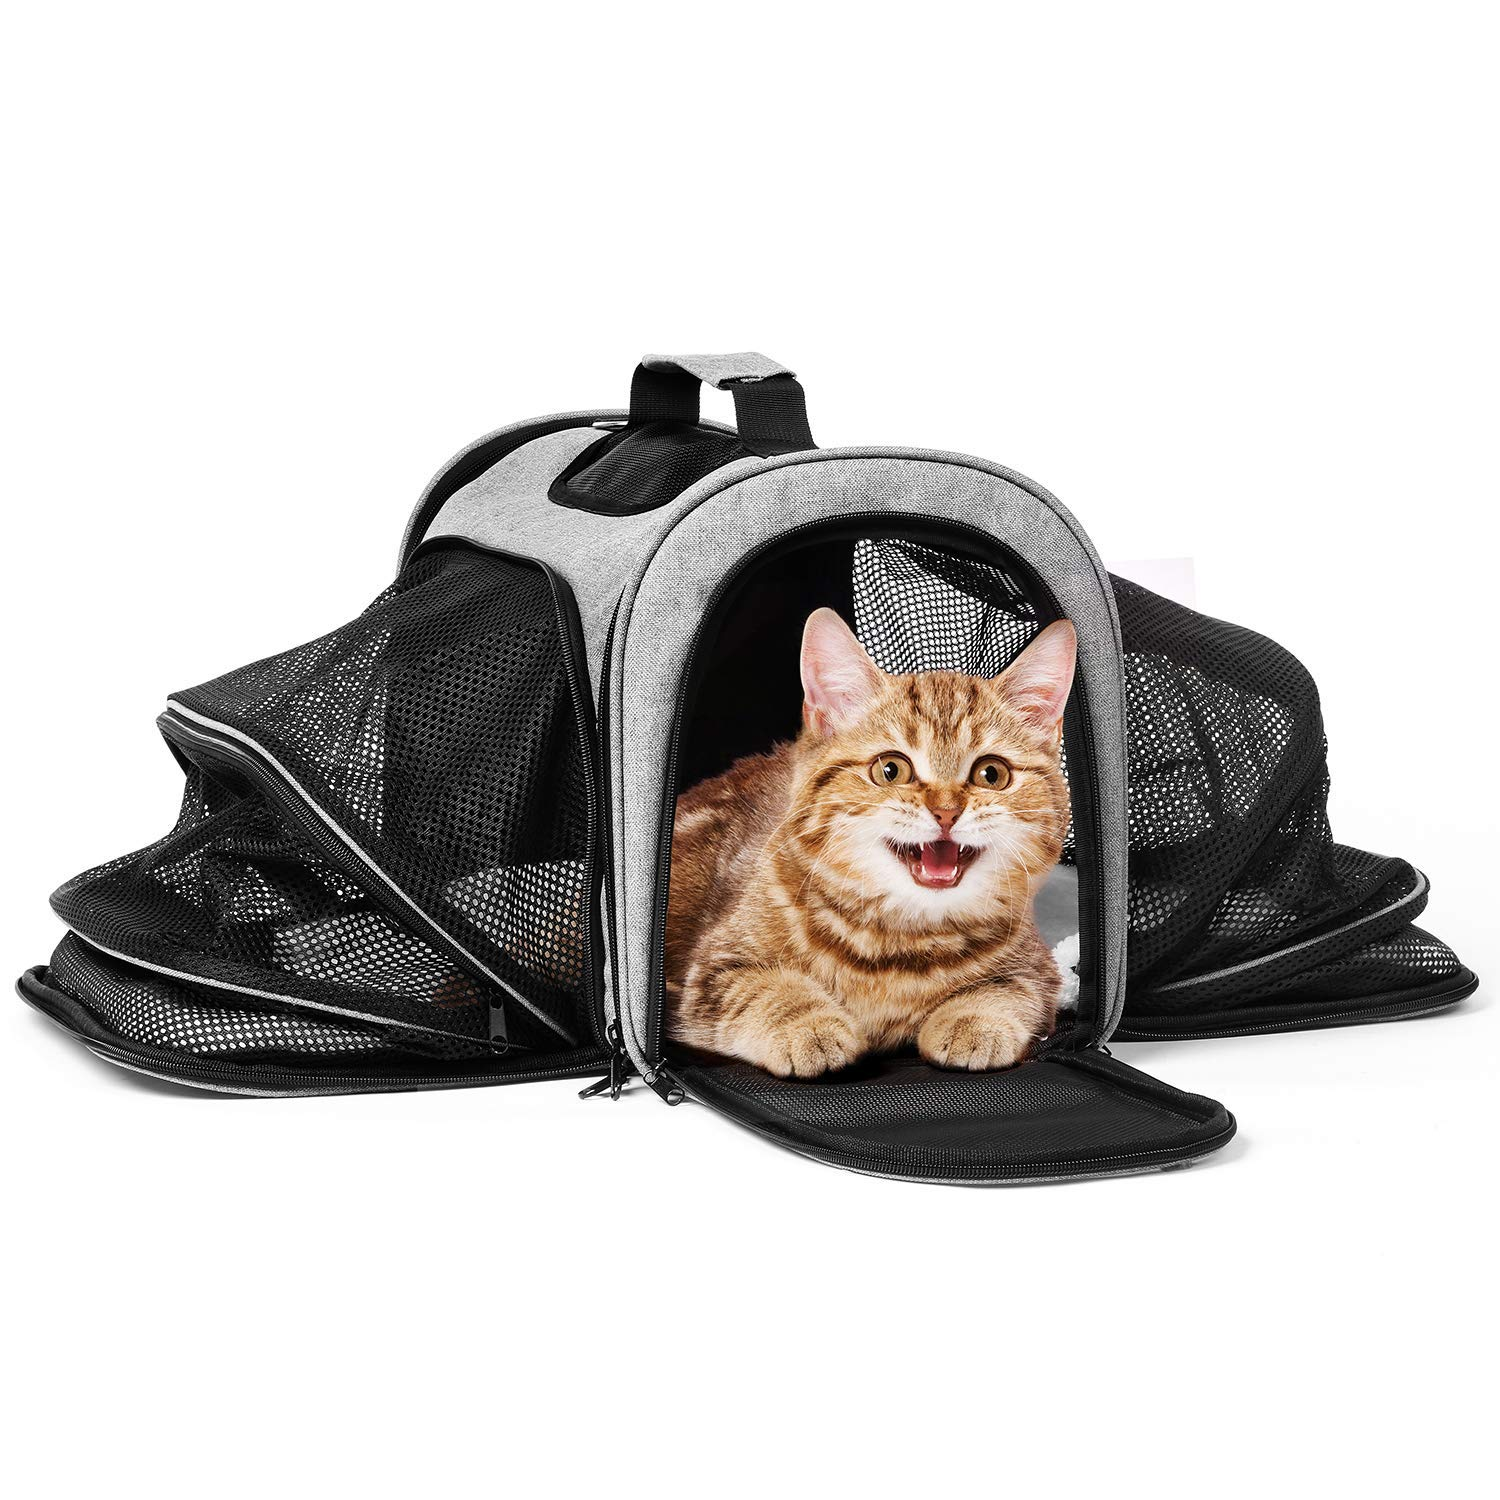 Katze-Tatze Pet Carrier, Portable Dog Carrier Cat Carrier Bag